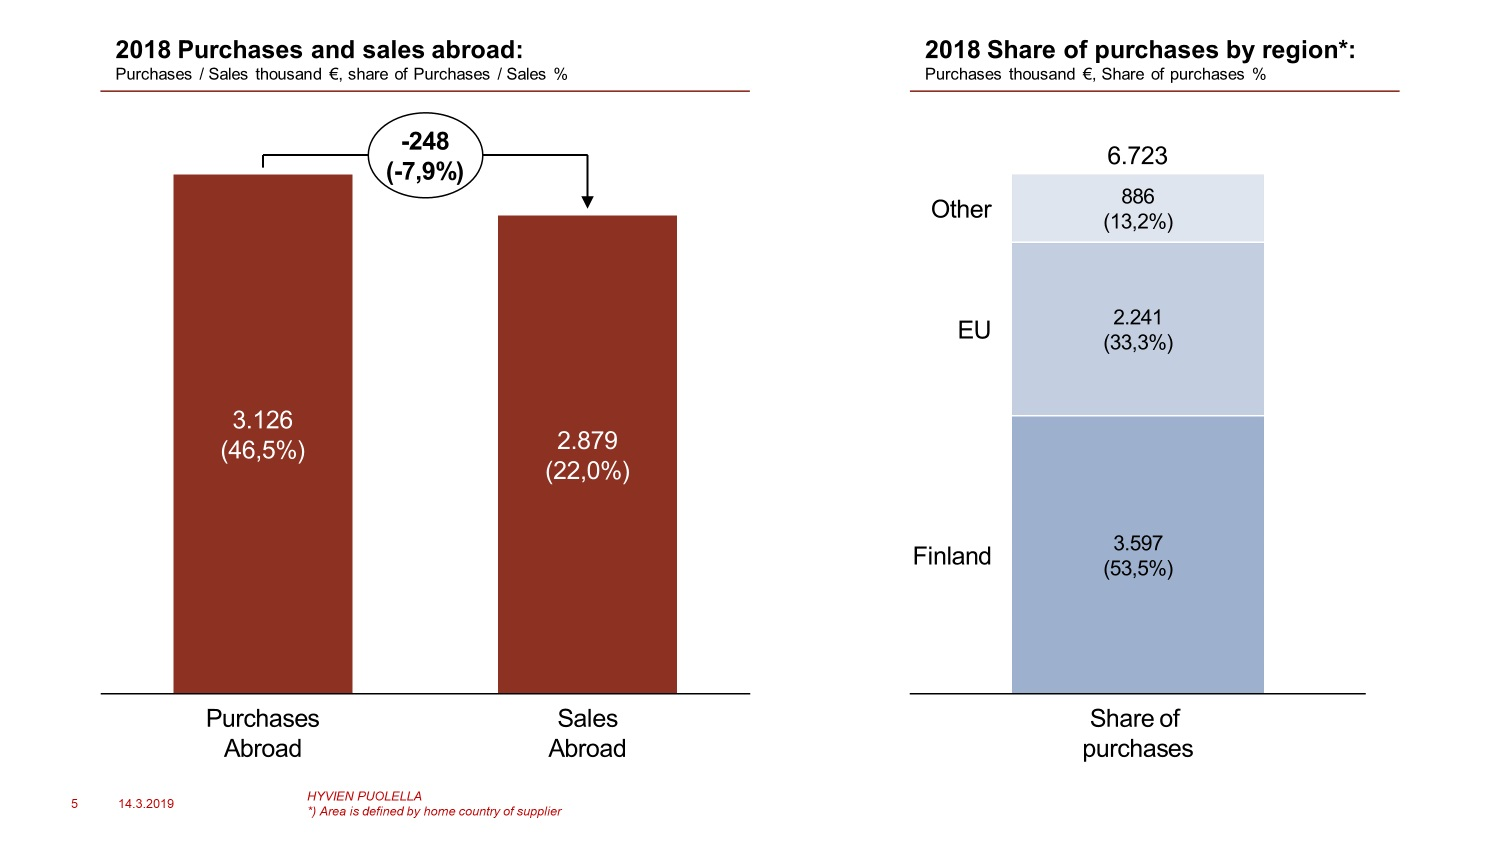 Bar chart: Purchases and sales abroad, and share of purchases by region. Purchases abroad €3,126 M (46,5%), sales abroad €2,879 M (22%). Share of purchases by region: FInland €3,597 M (53,5%), EU €2,241 M (33,3%), Other €886 M (13,2%).